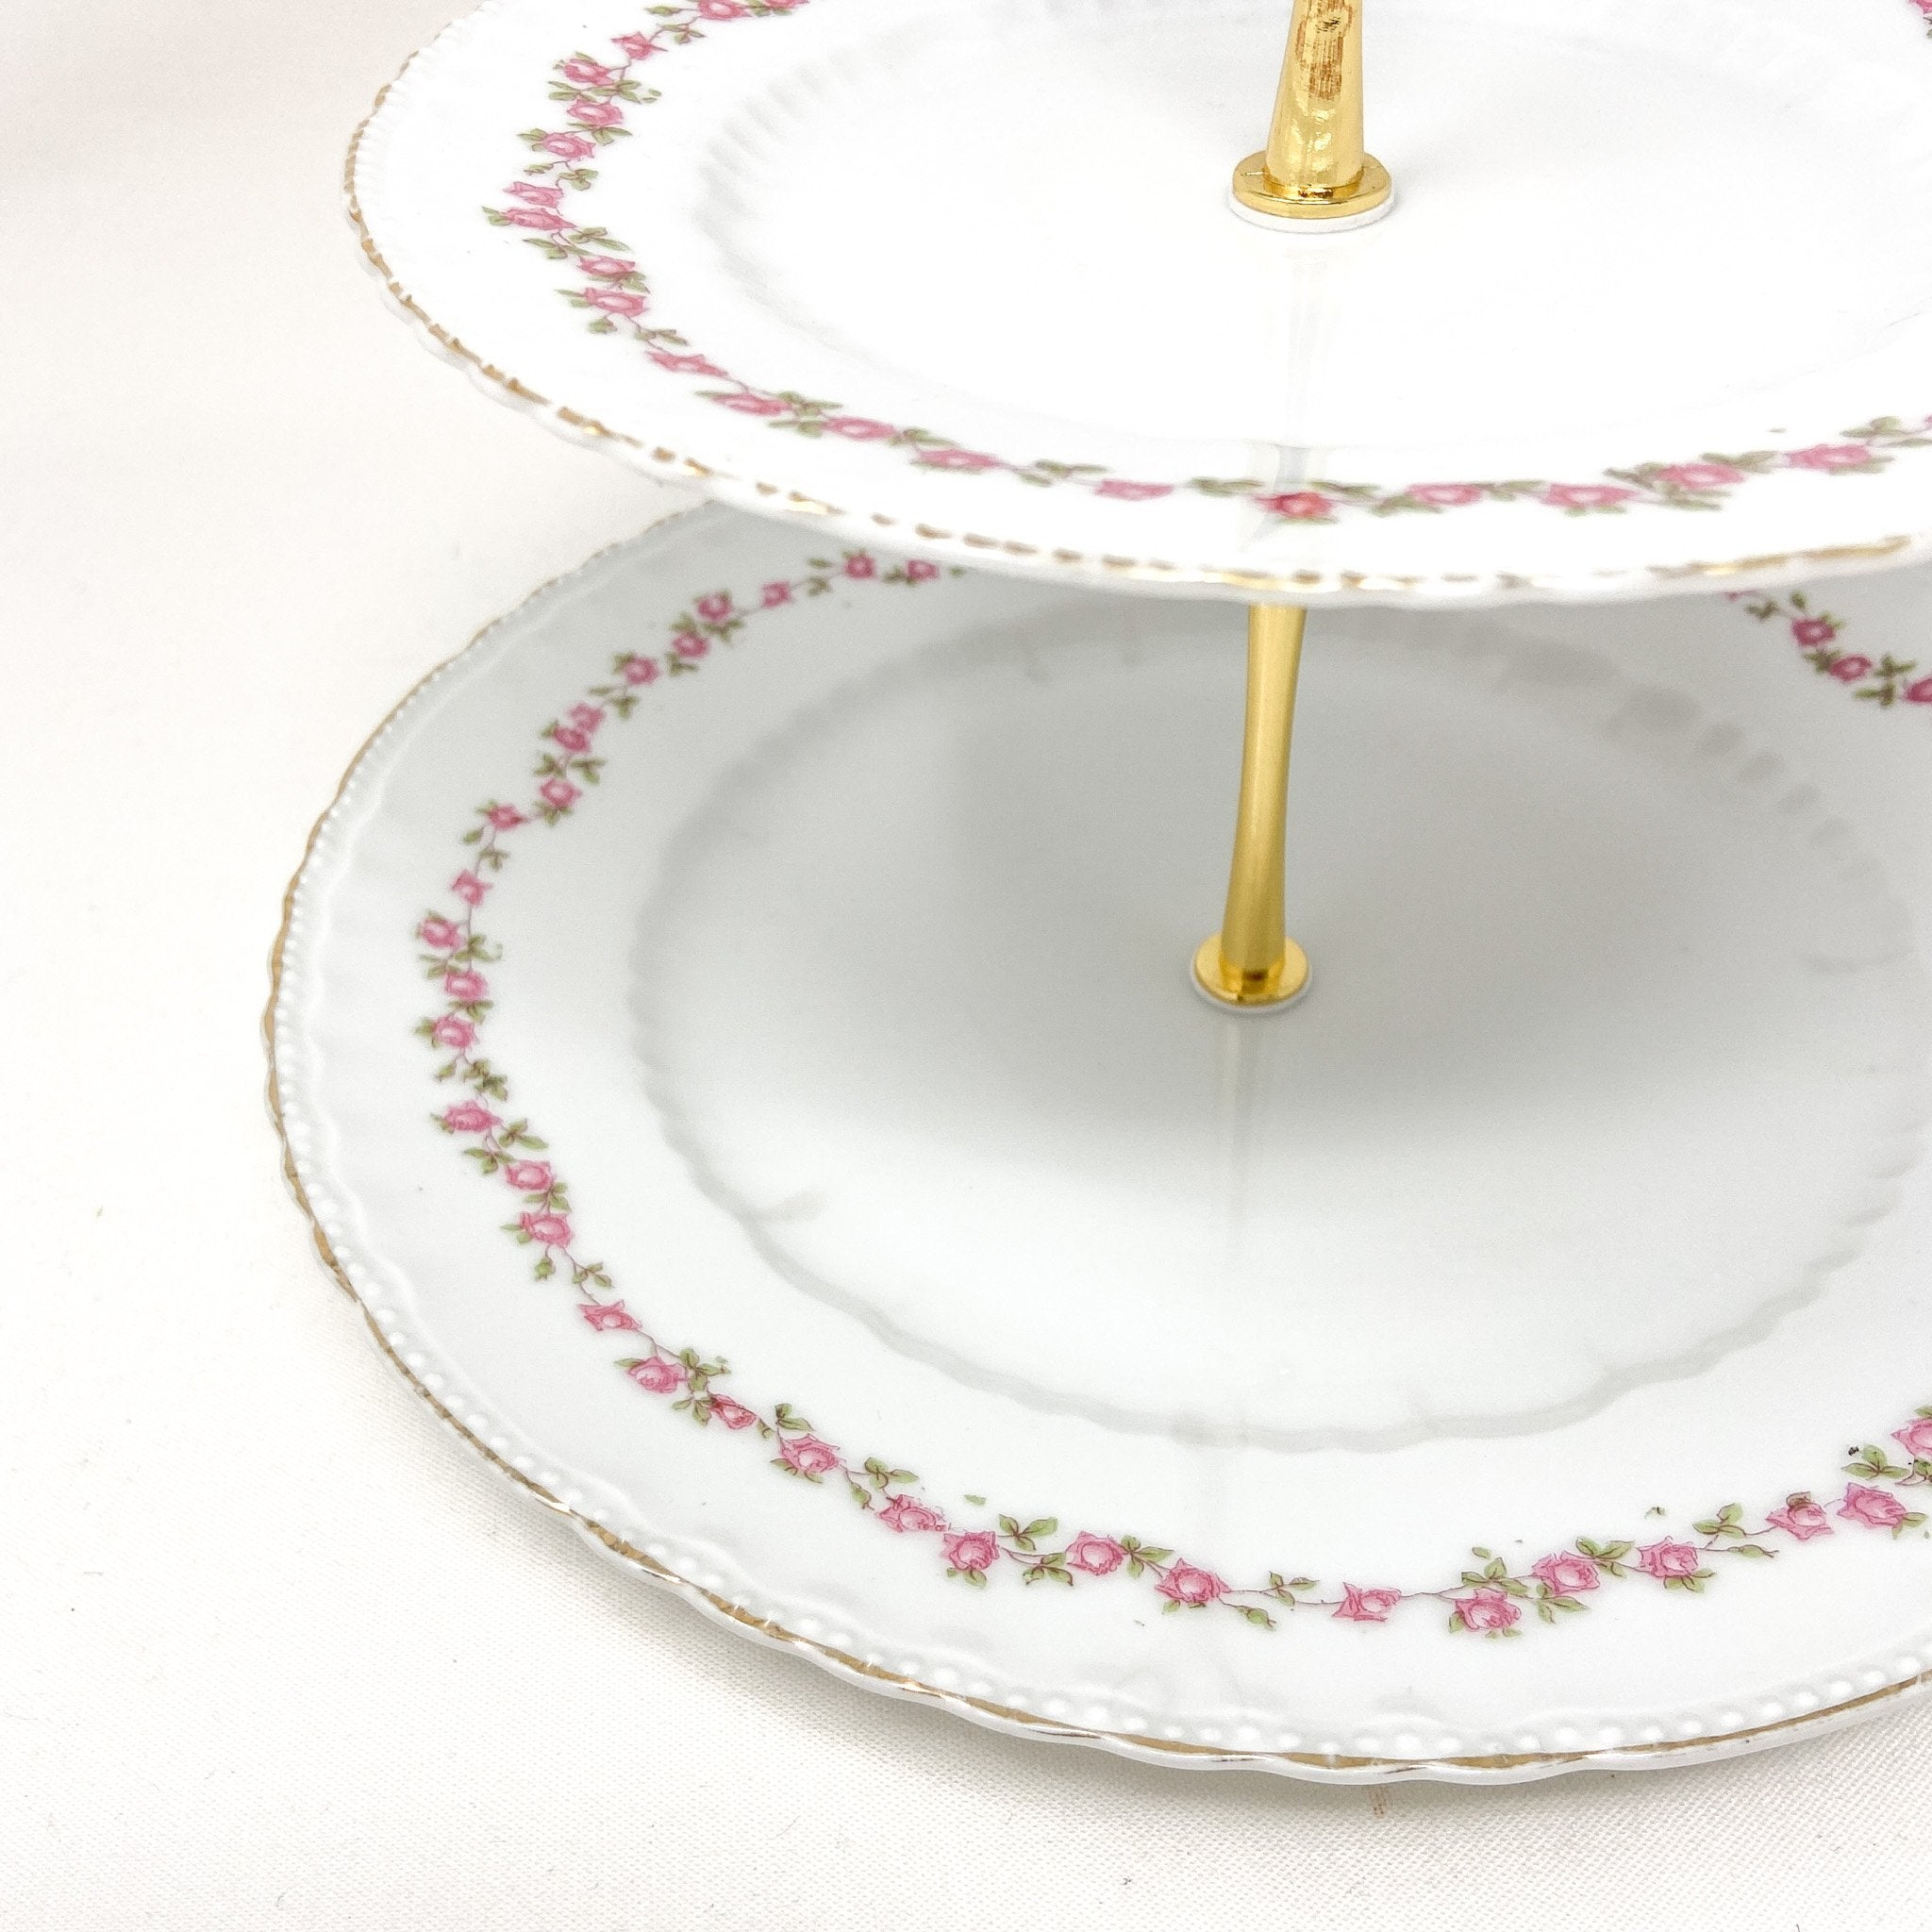 Close up of Victoria Austria Delicate Rose 2-Tiered Stand | The Brooklyn Teacup